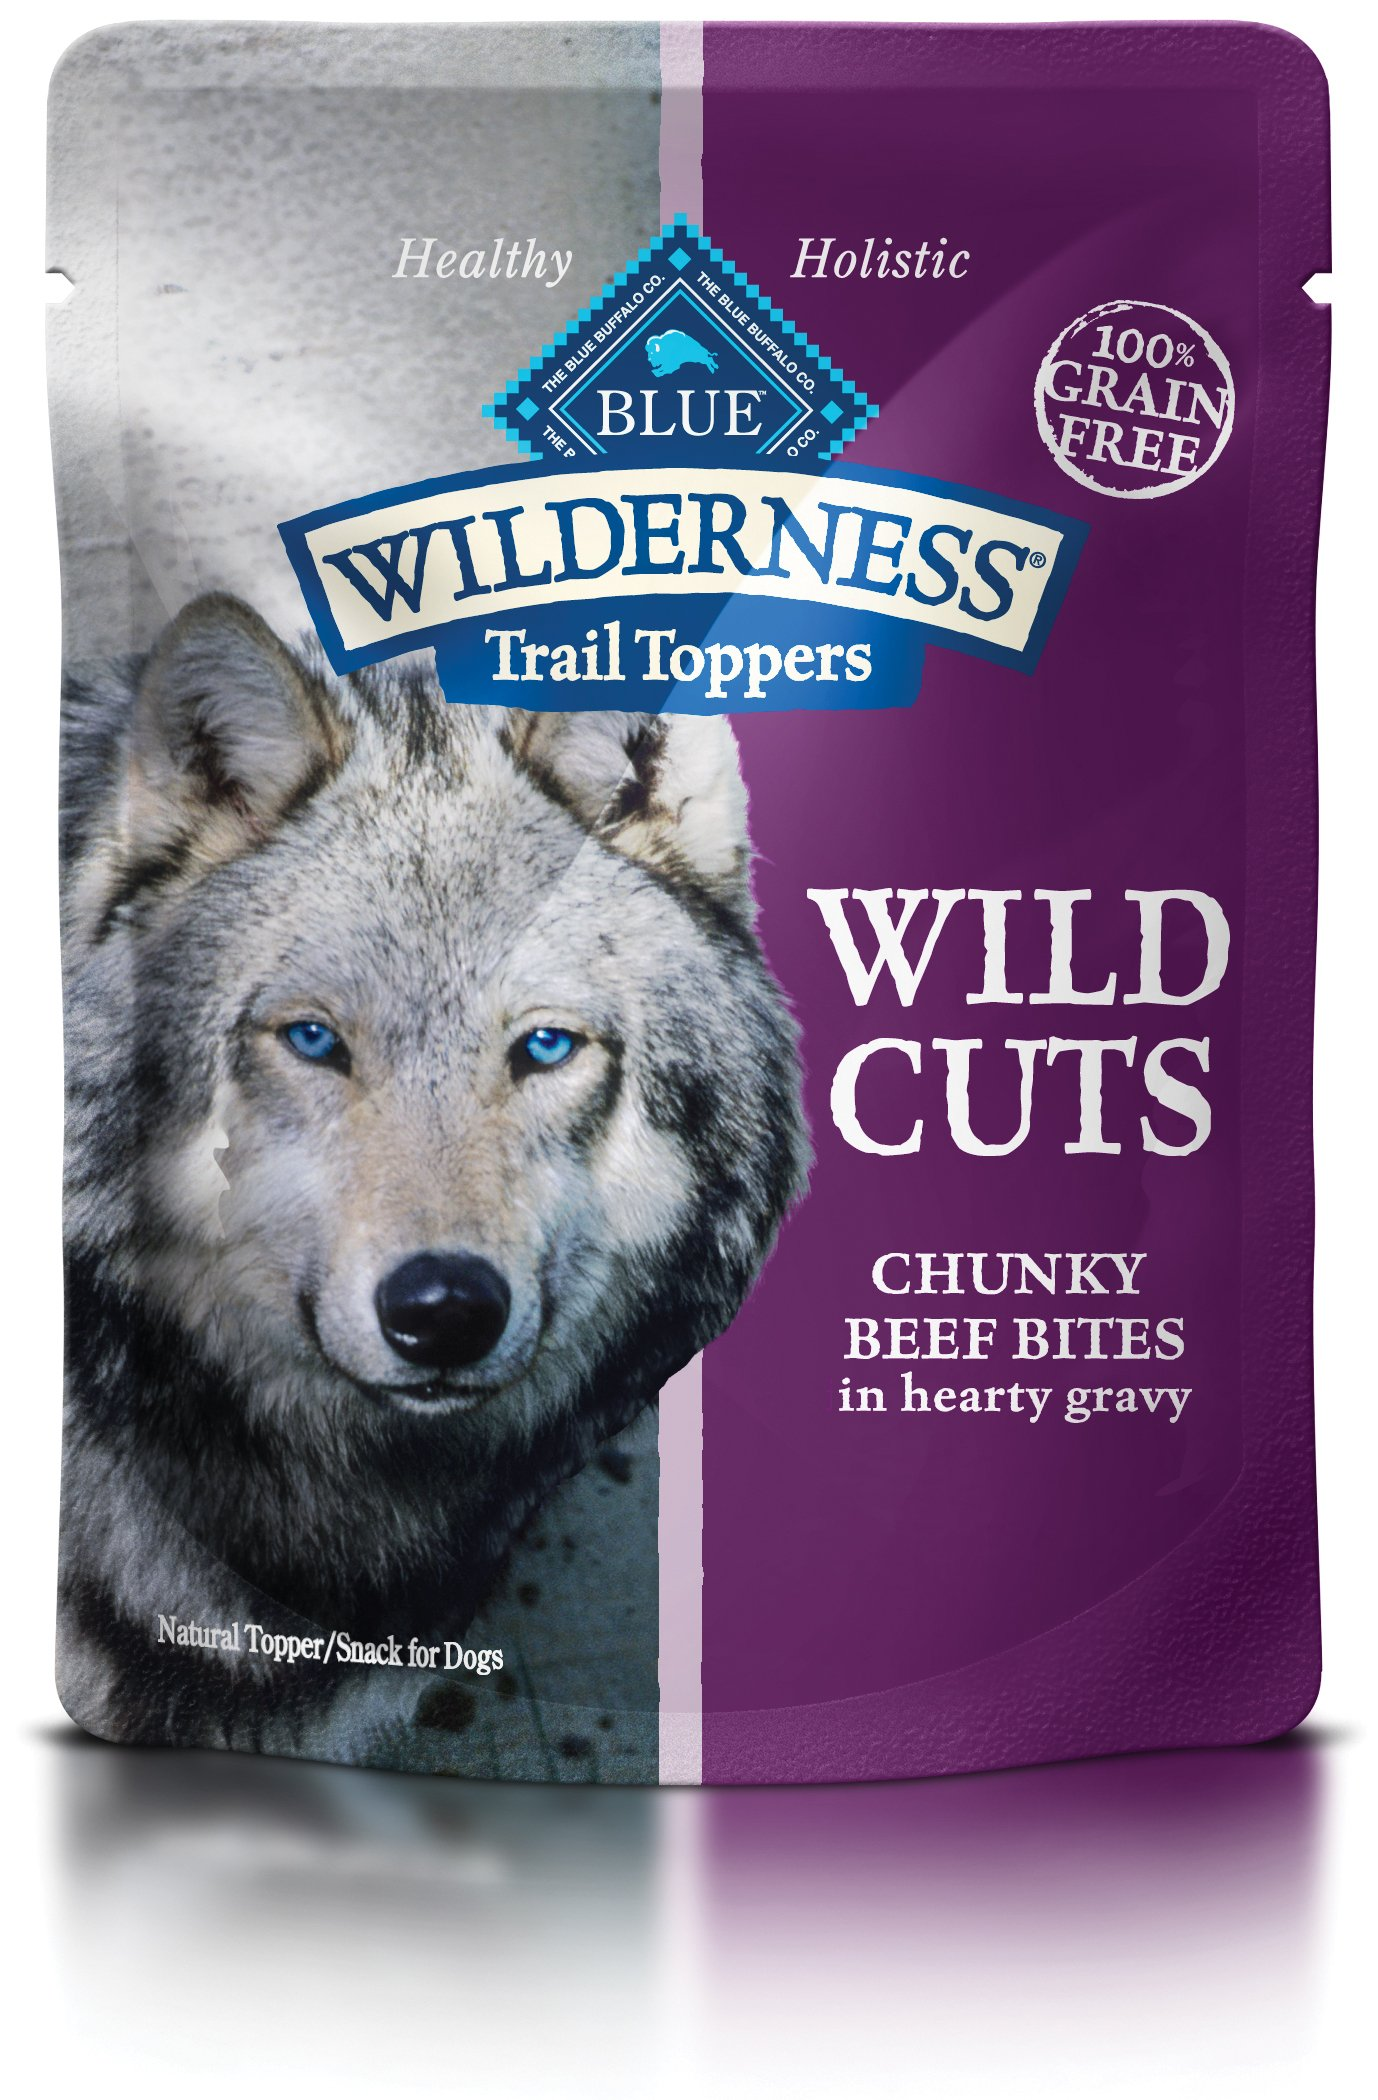 Blue Buffalo Wilderness Trail Toppers Wild Cuts High Protein Grain Free, Natural Wet Dog Food, Chunky Beef Bites In Hearty Gravy 3-Oz Pouch (Pack Of 24) by Blue Buffalo